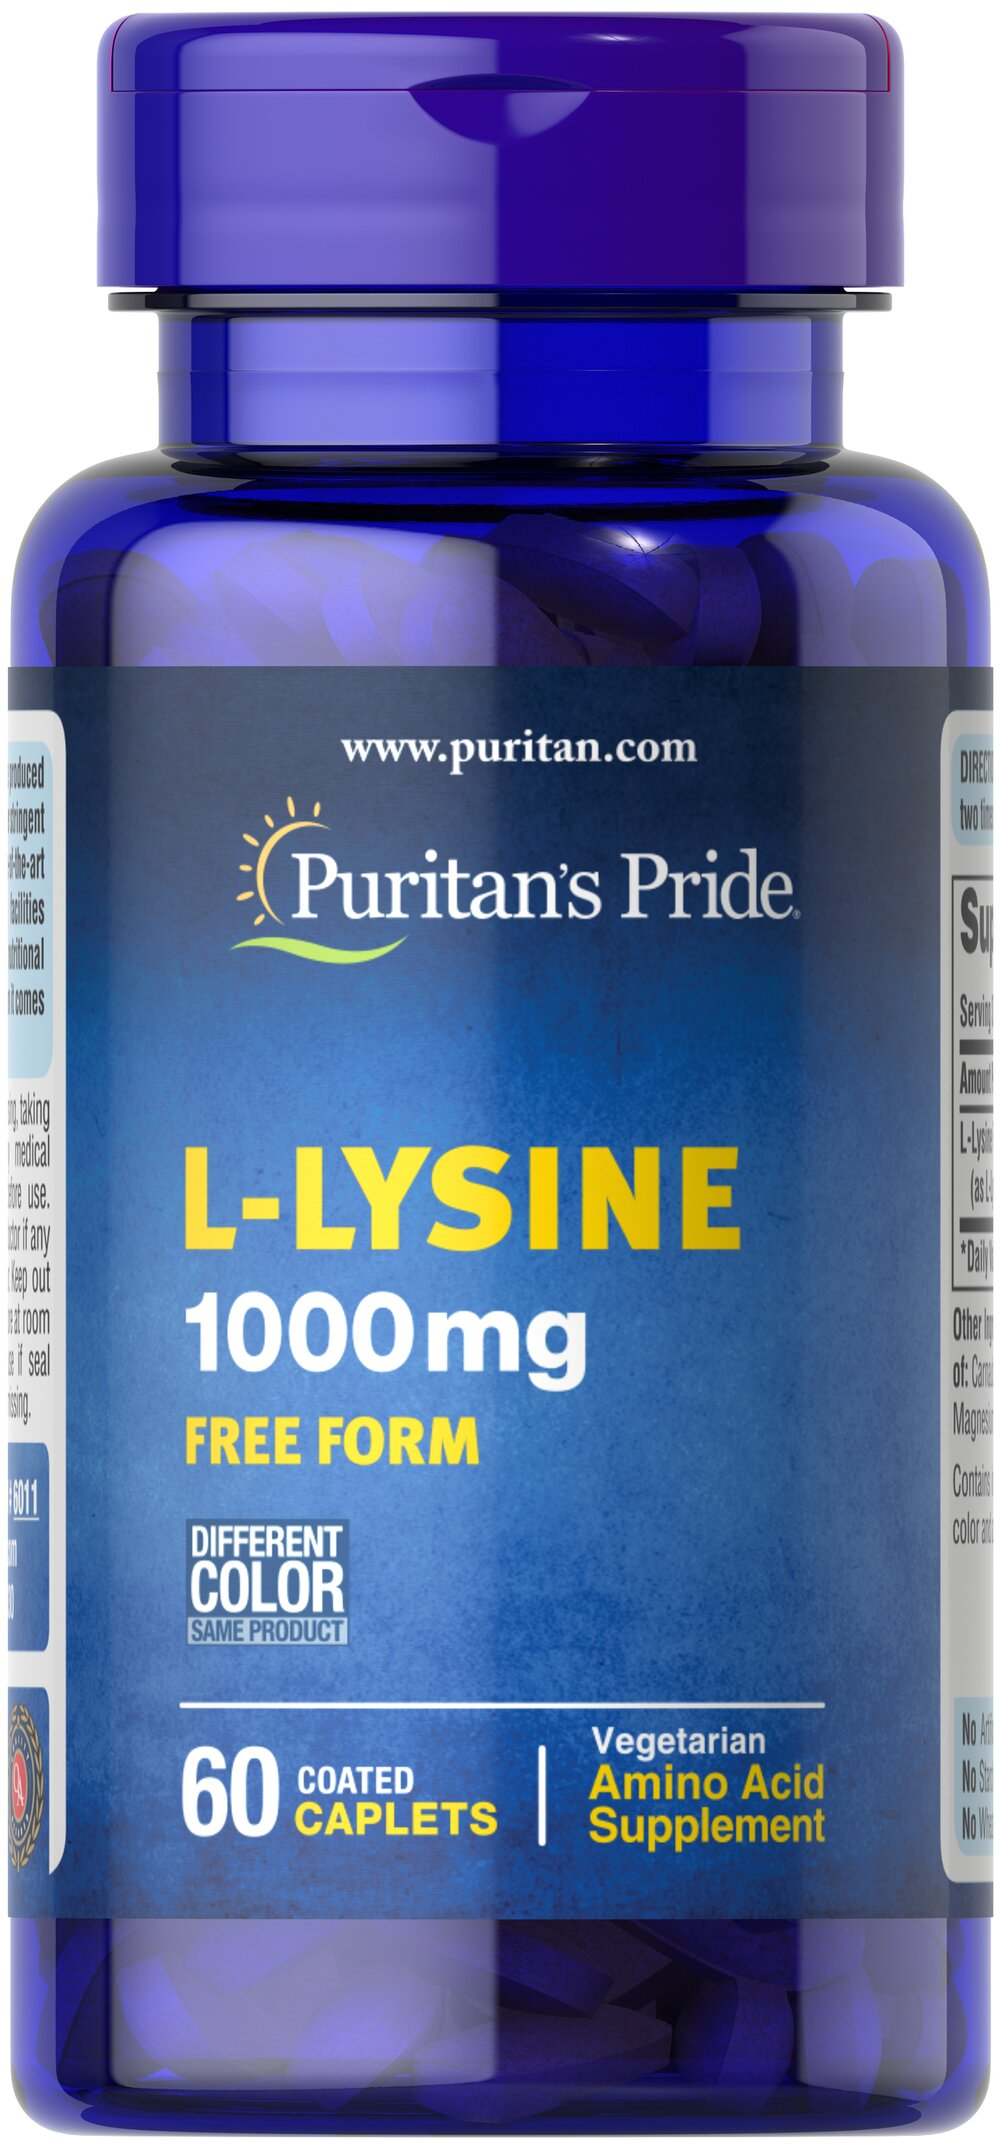 L-Lysine 1000 mg <p>For Balanced Nutrition and Health**</p><p>Lysine is an indispensable amino acid that cannot be made by the body.** Amino acids form the basis for protein, which helps construct and maintain the critical structures in the body.** Lysine is also used for the health and integrity of skin.**</p> 60 Caplets 1000 mg $7.49